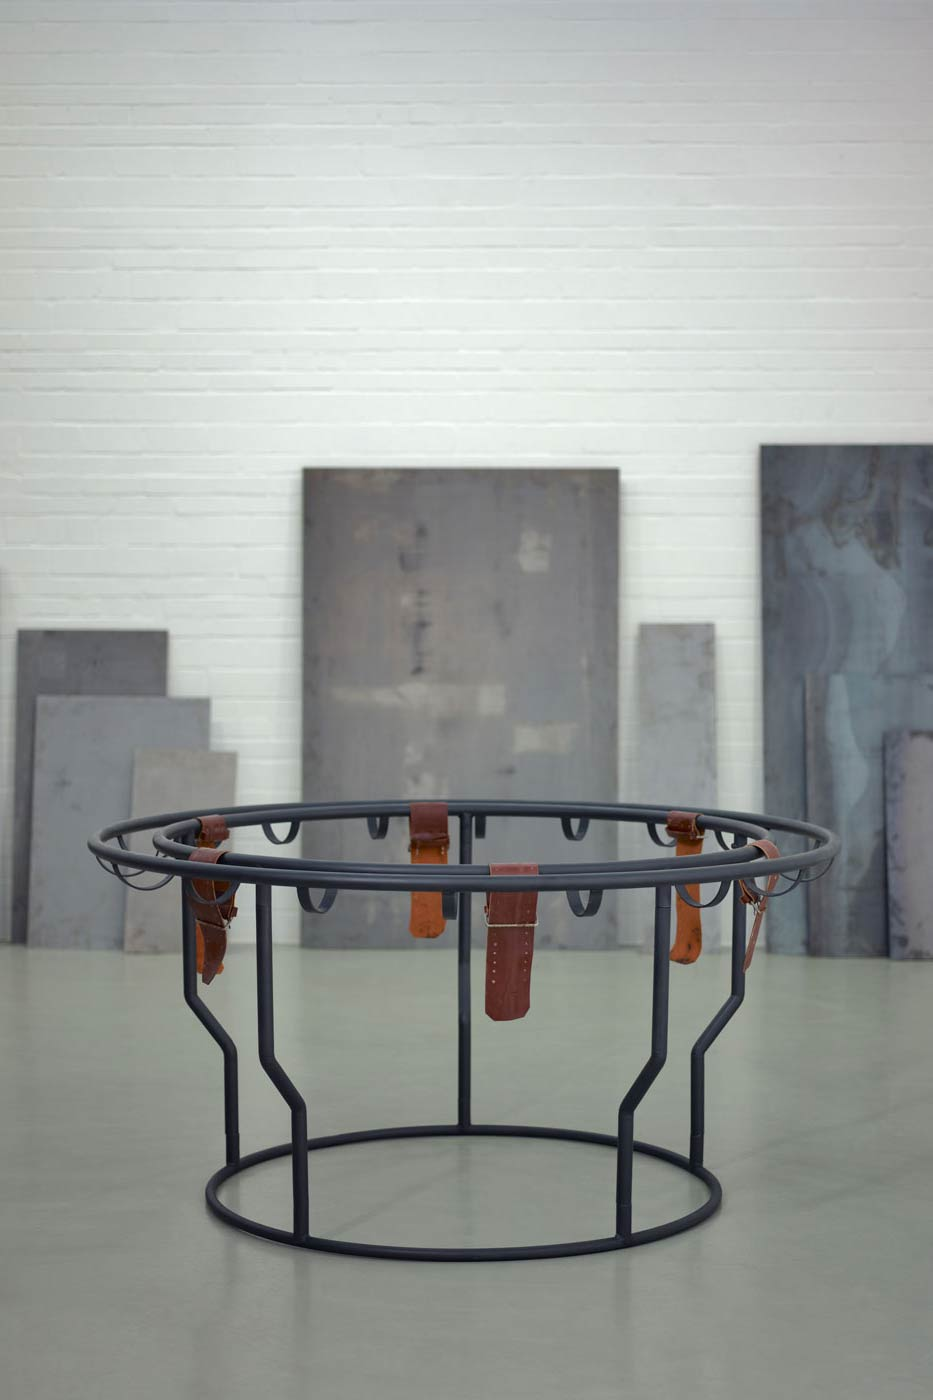 Schlangentisch (Snake Table)